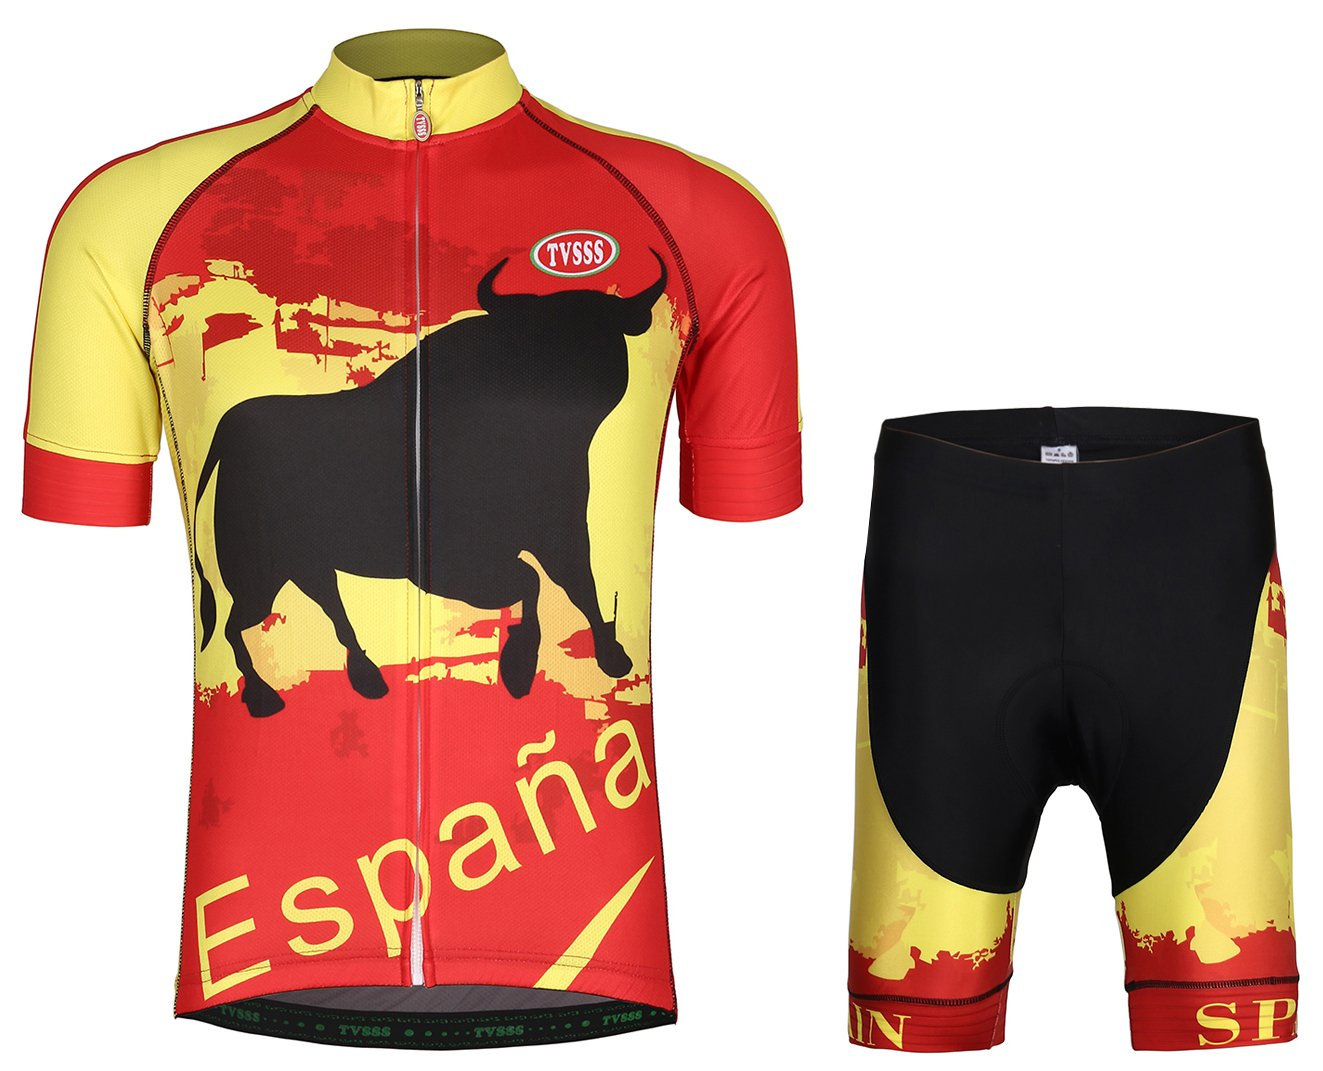 Cycling Jersey Sets Men's Bib Shorts Short-Sleeved Summer Cycling Clothing Team Suits B07428STD6 Medium|Spanish Set 3 Spanish Set 3 Medium